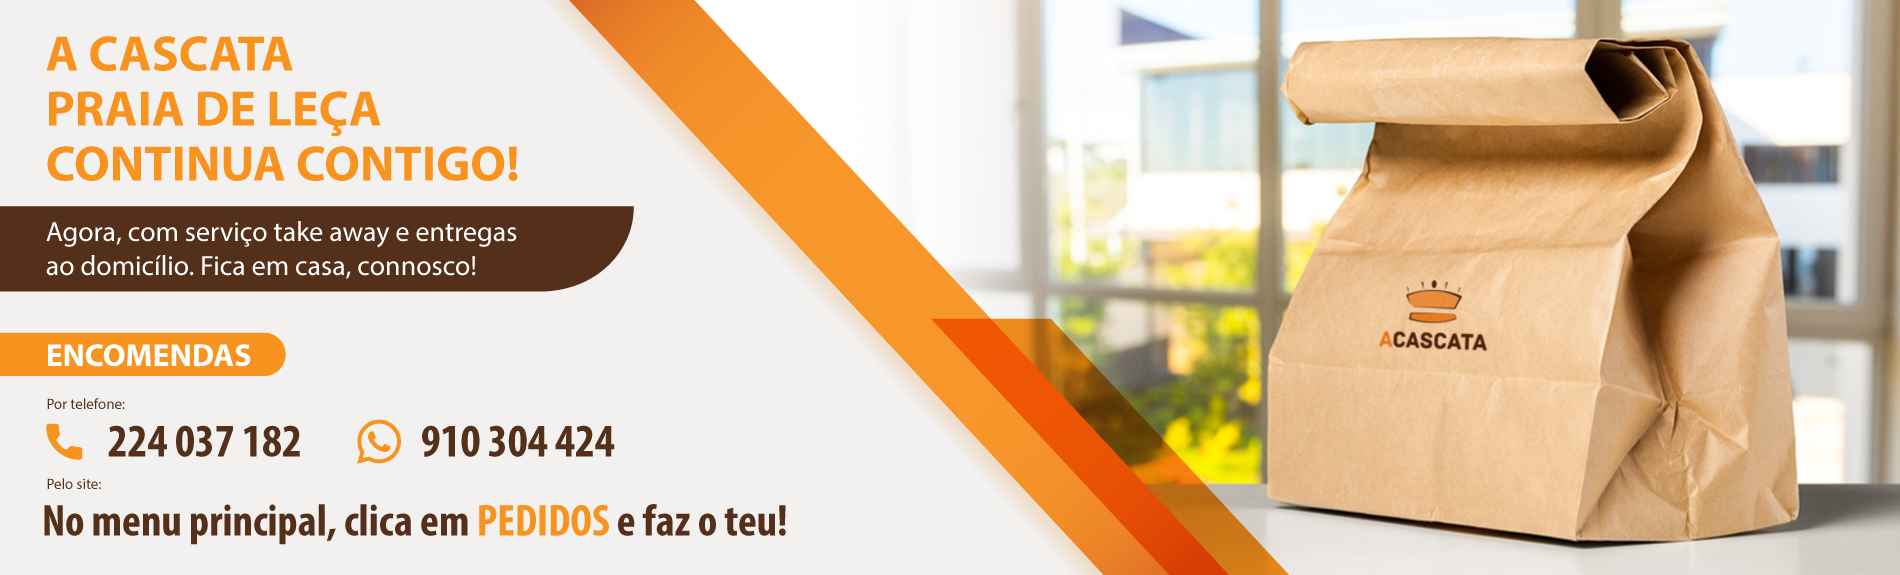 JOB00384_A-cascata_Restaurante_Take_away_banner1.png